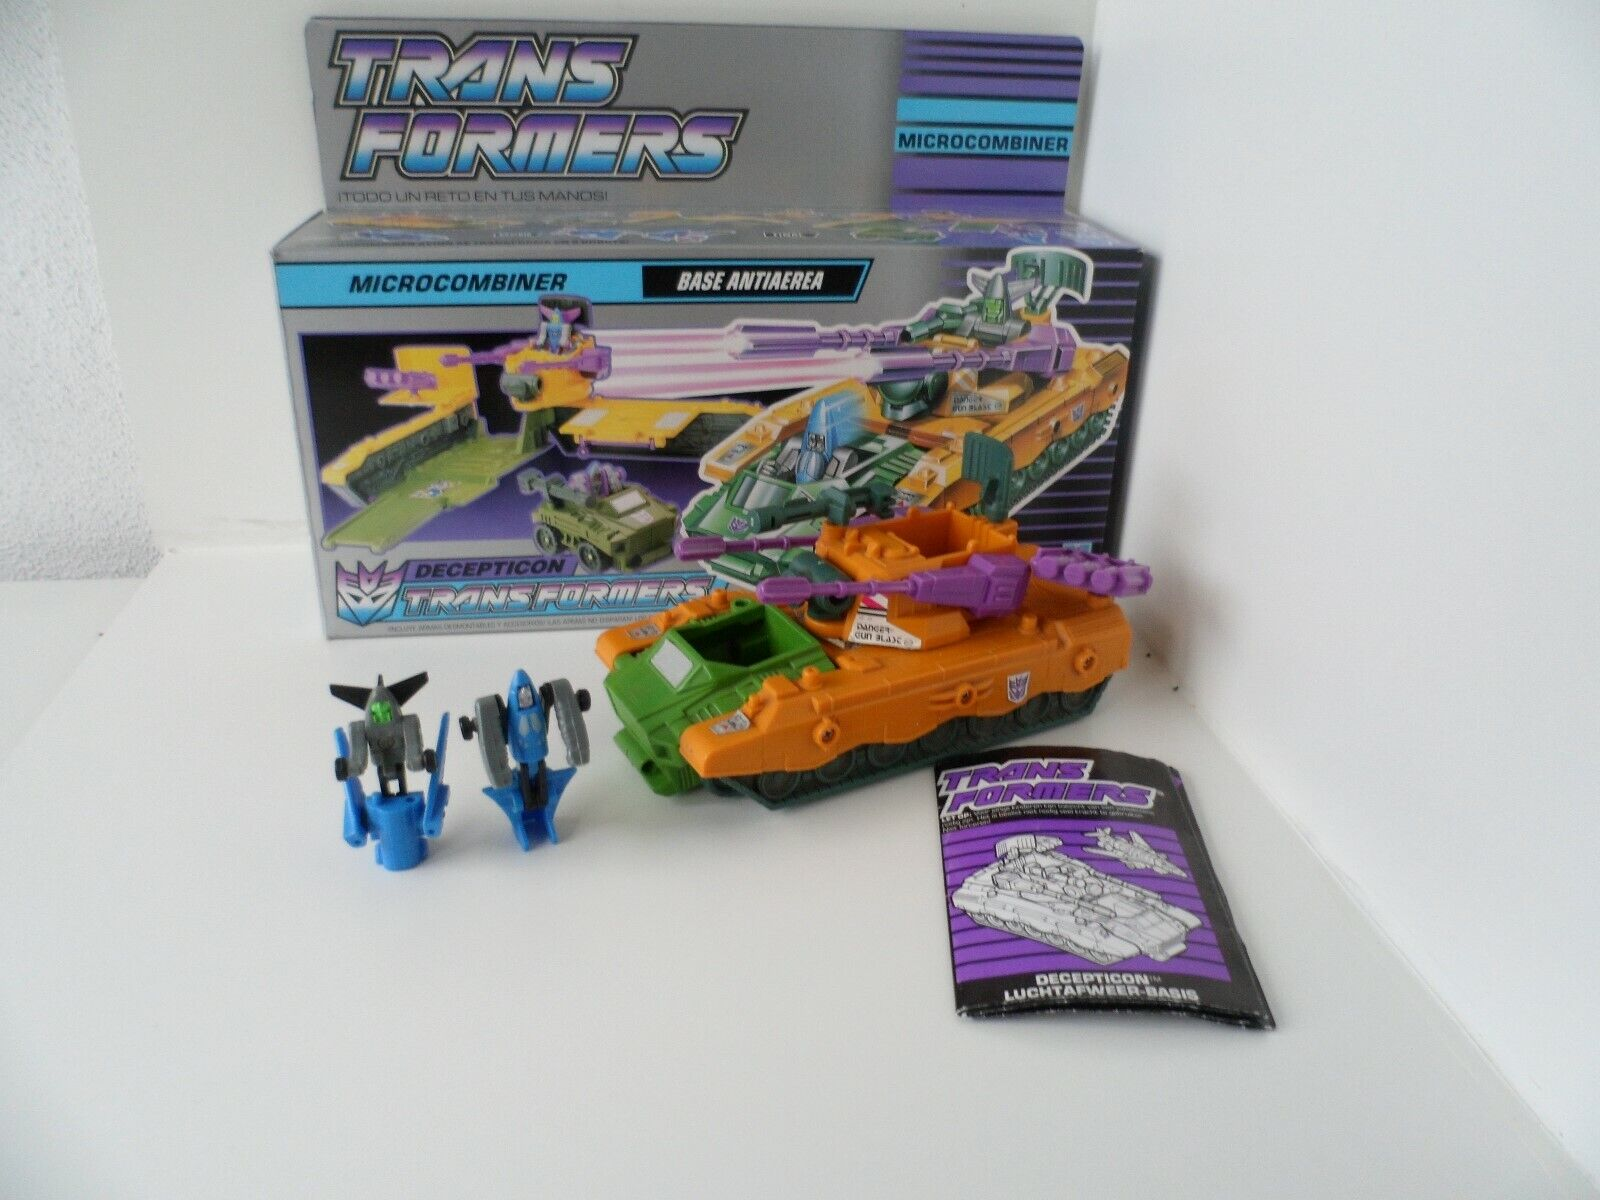 Anti-Aircraft Base Micromaster Micromaster Micromaster MIB 100% completare 1989 Vintage G1 Transformers 33b9a2